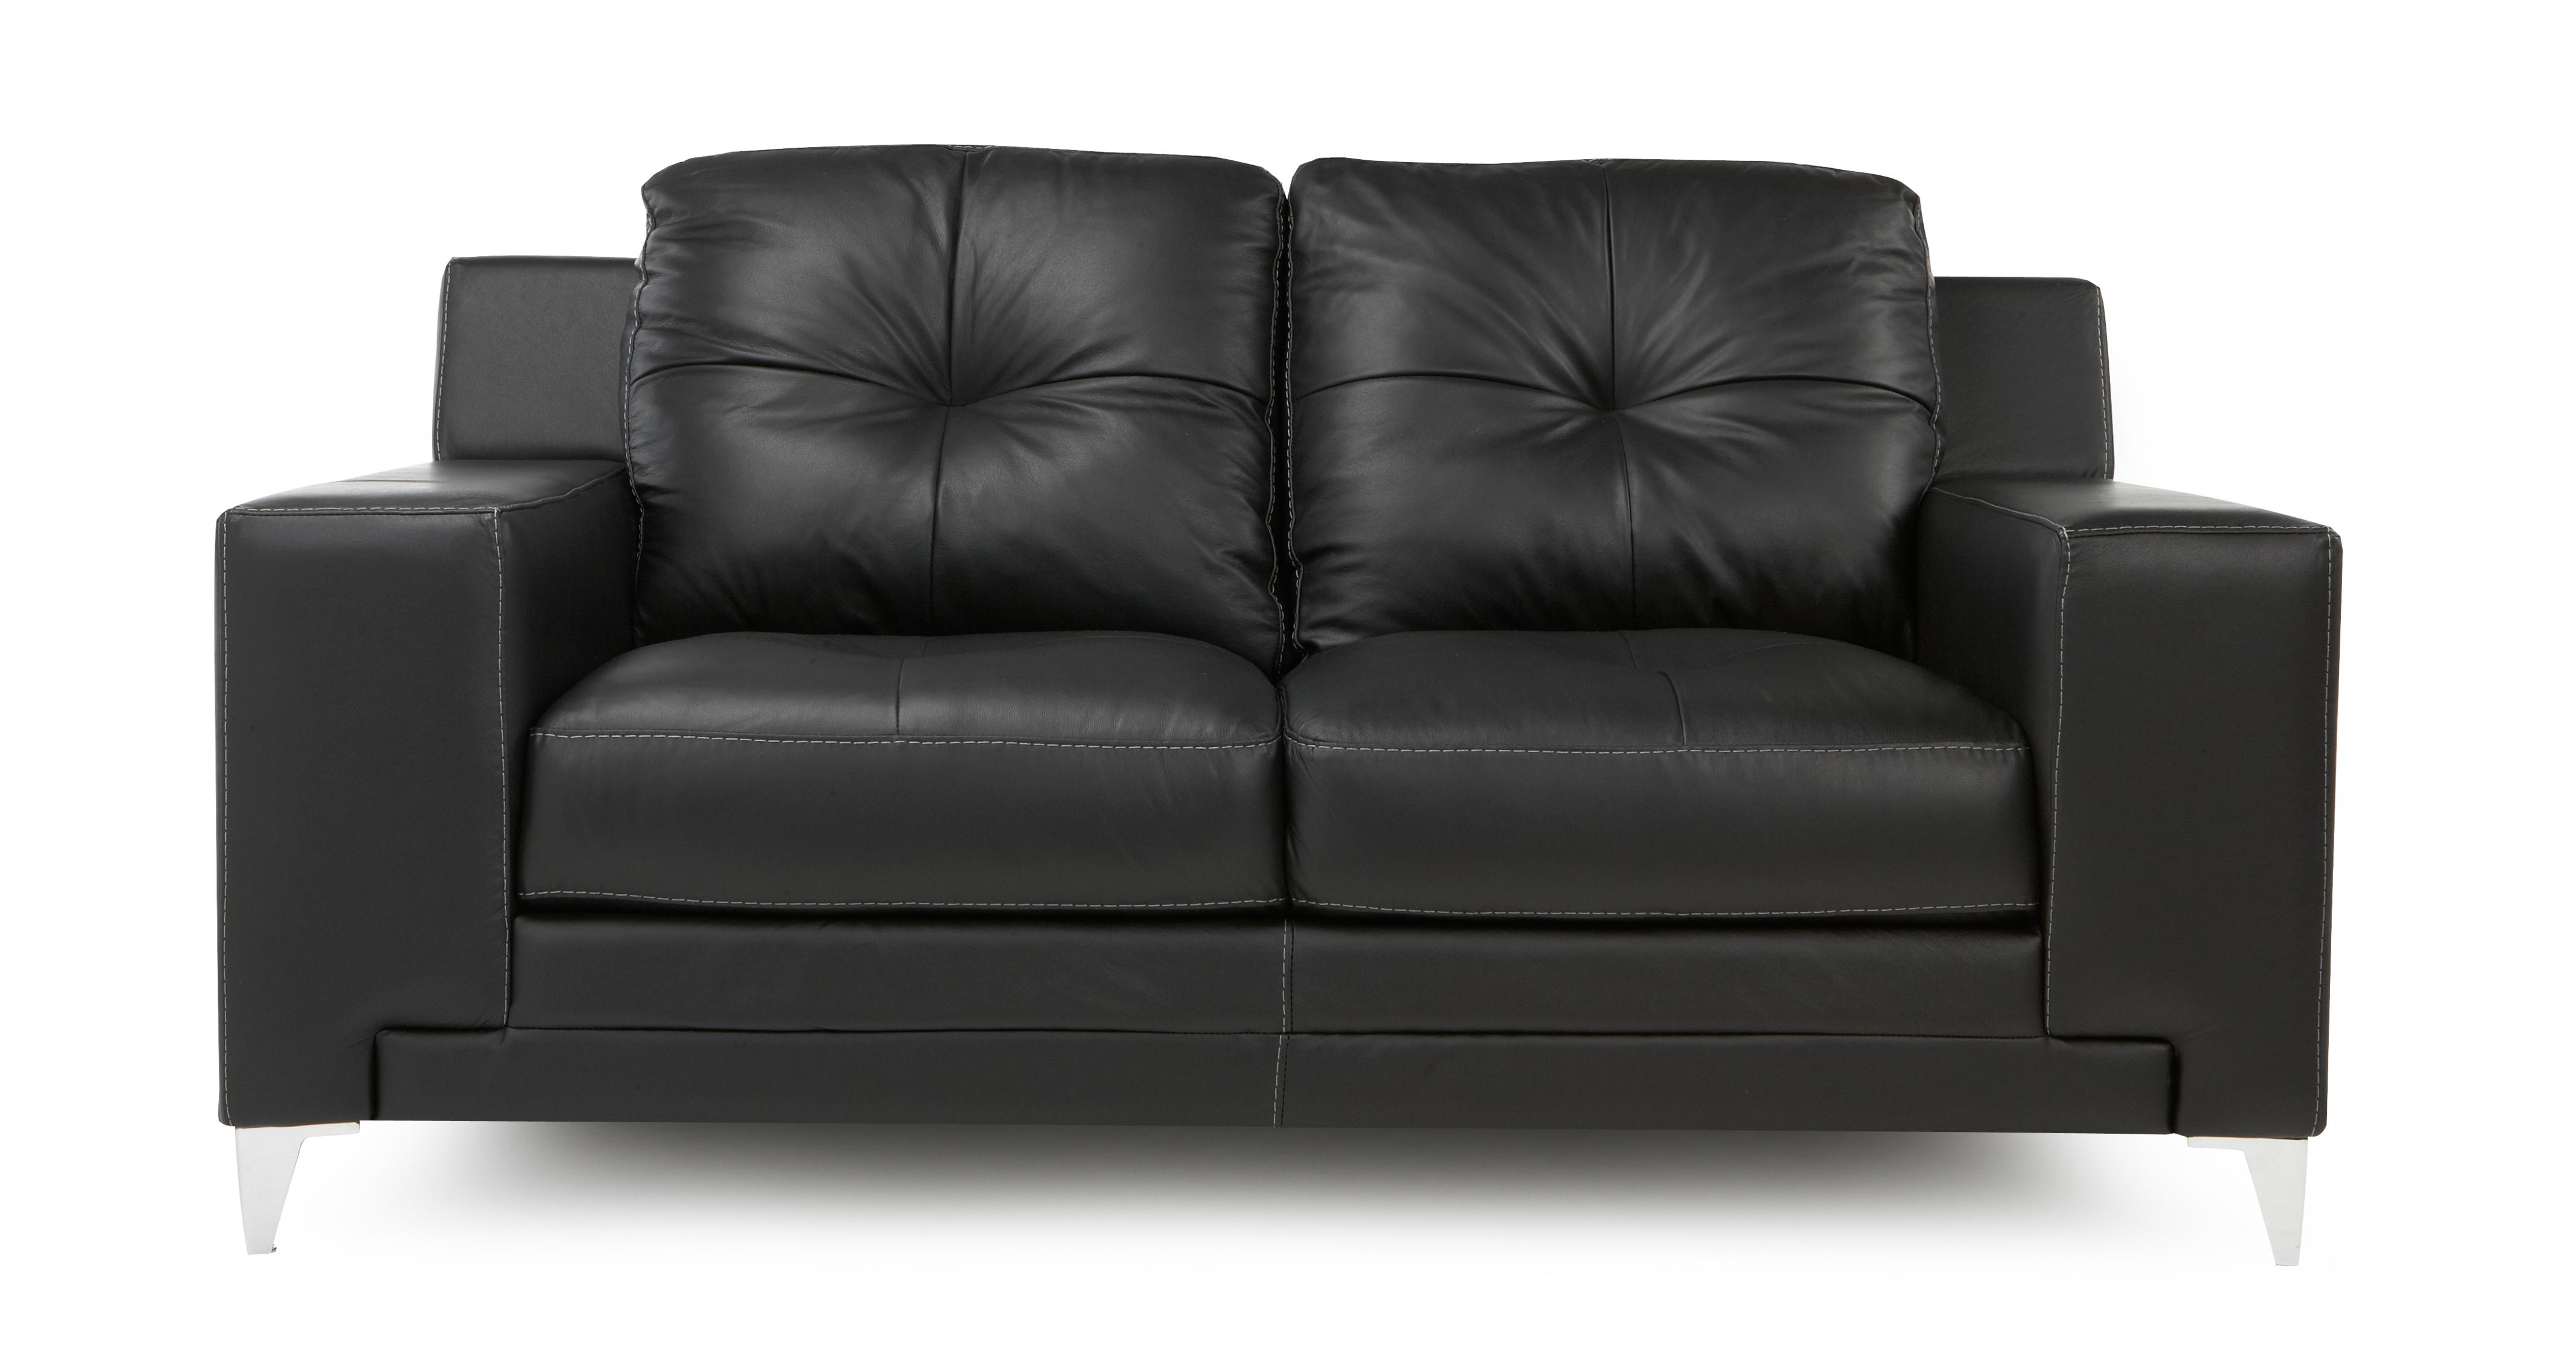 2 seater leather sofas at dfs puzzle sofa sectional domain set black with chair ebay